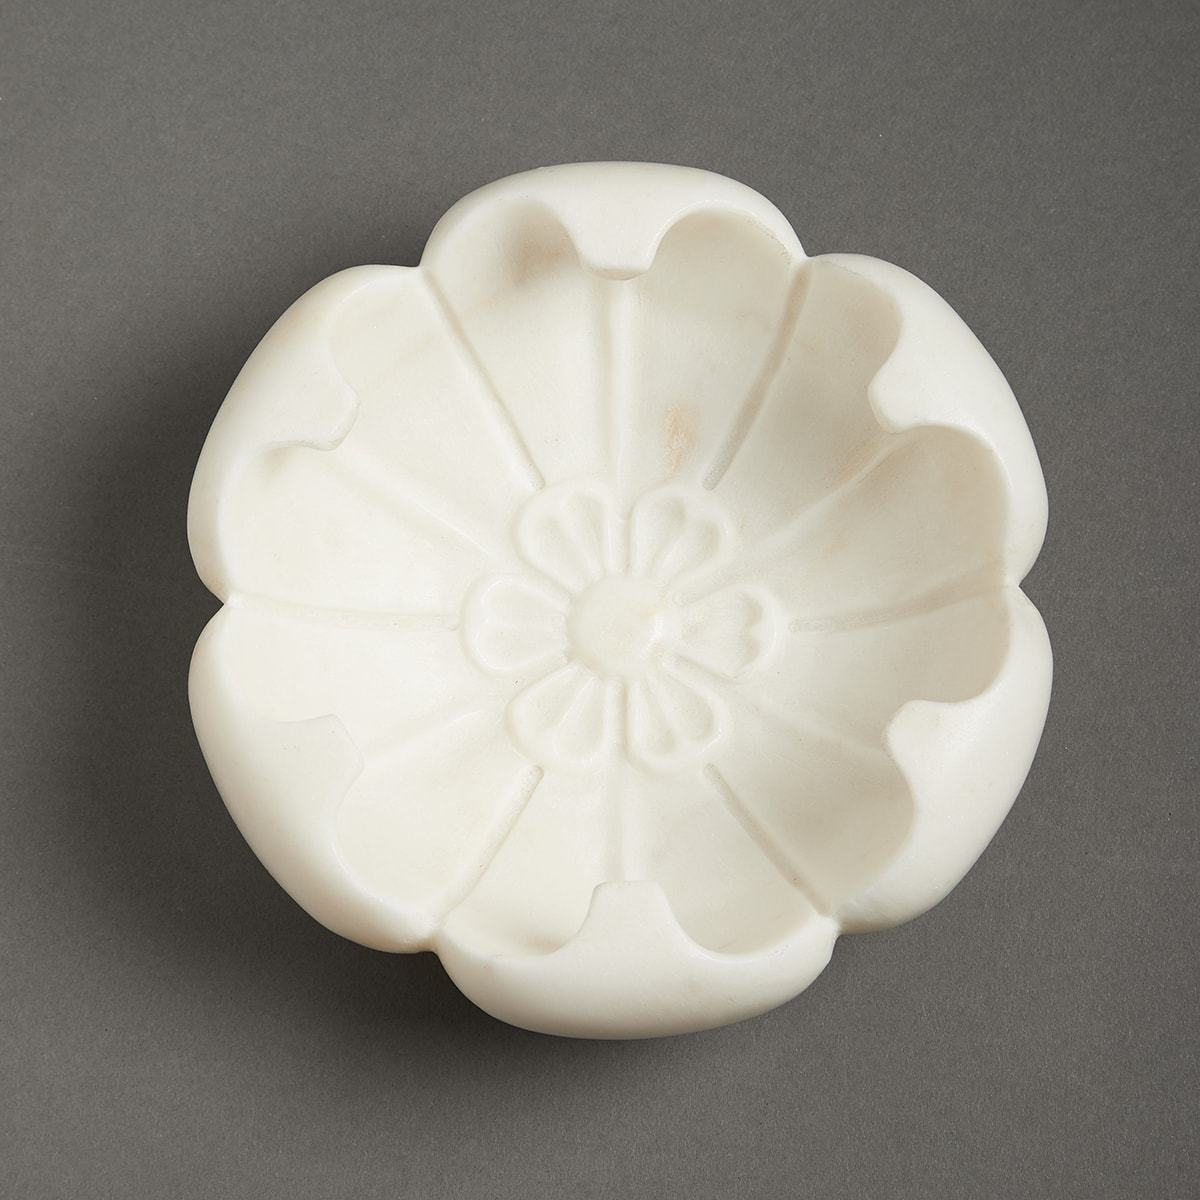 Ivory Awadh Marble Decorative (Blooming Flora) by Ritu Kumar Home - Home Artisan